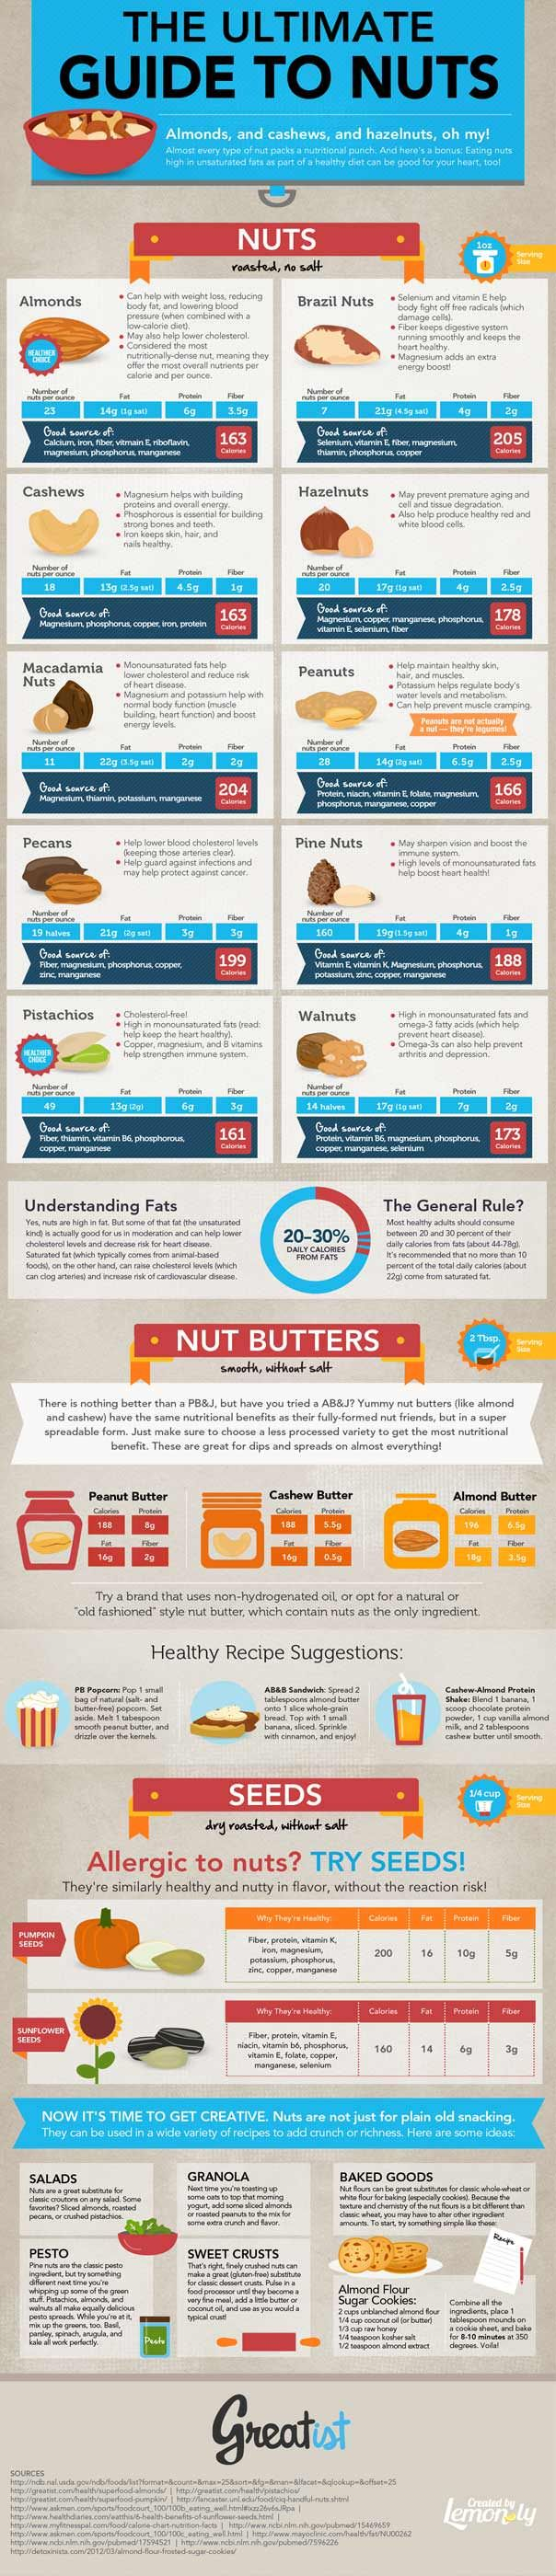 Guide to Nuts Infographic